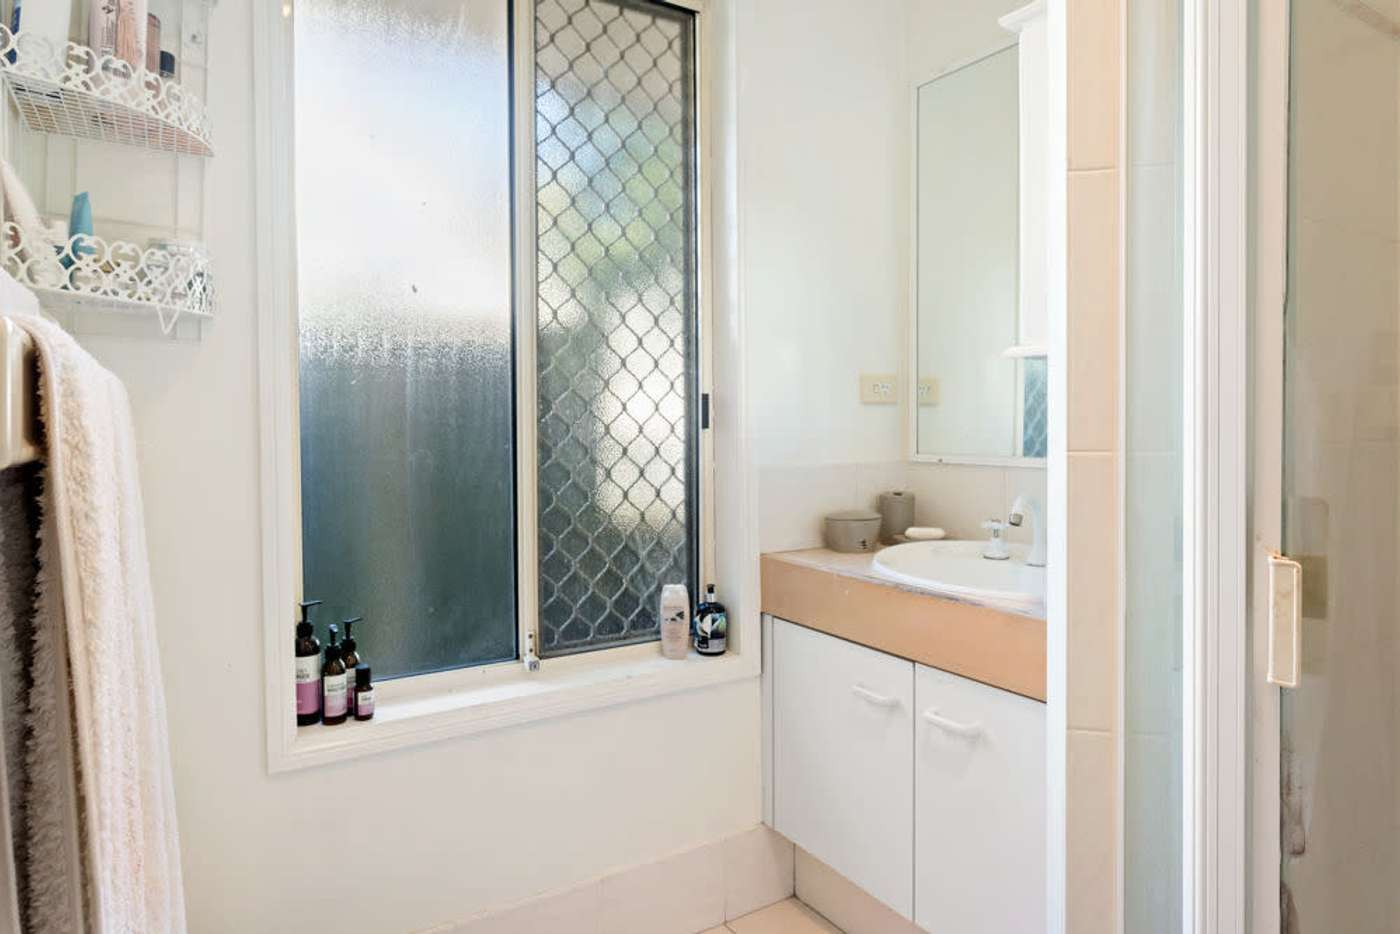 Fifth view of Homely townhouse listing, 1/44 Clowes Lane, Newmarket QLD 4051